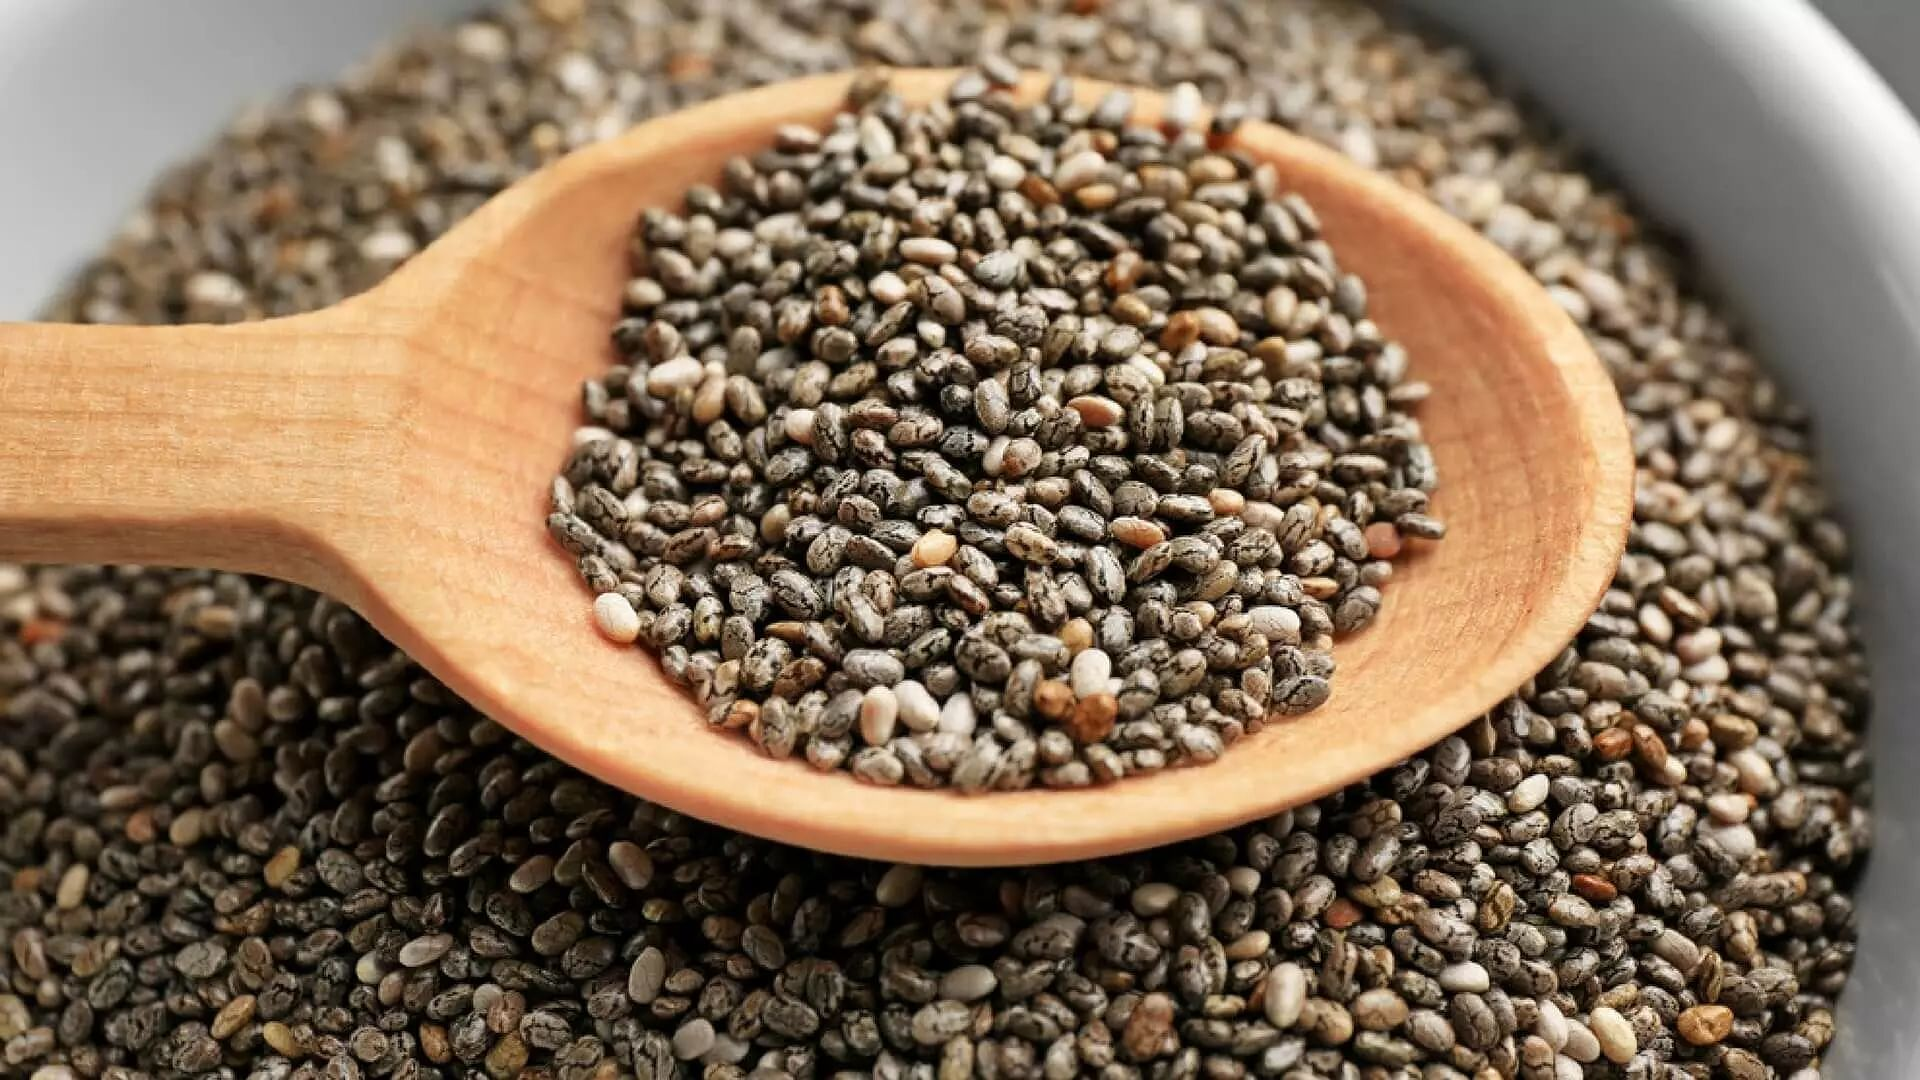 Chia seeds and their various benefits